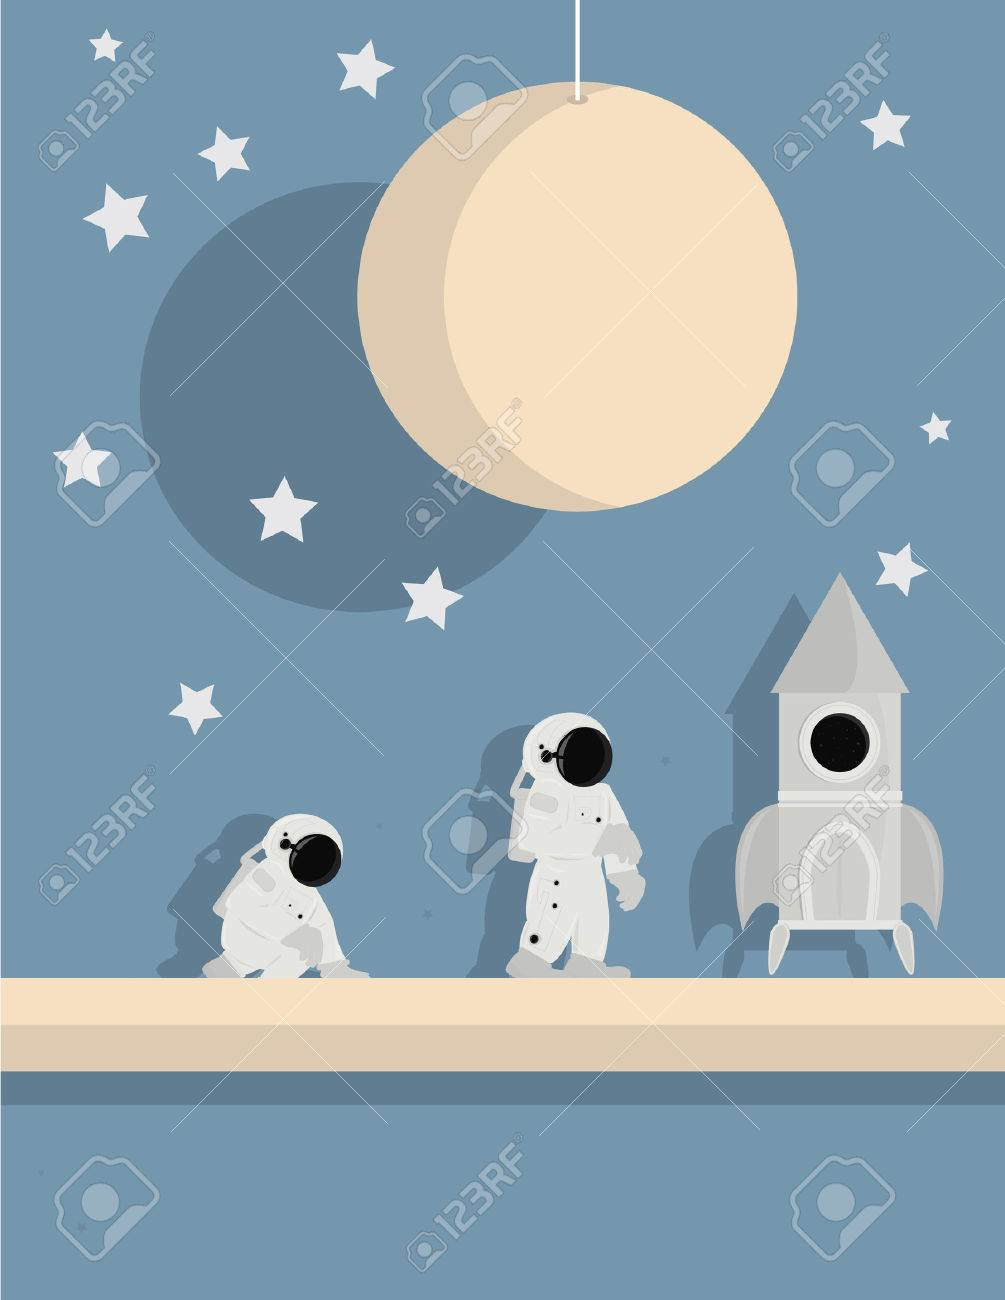 standing and kneeling astronauts with ship on a star background with pink planet and white stars Stock Vector - 6468279